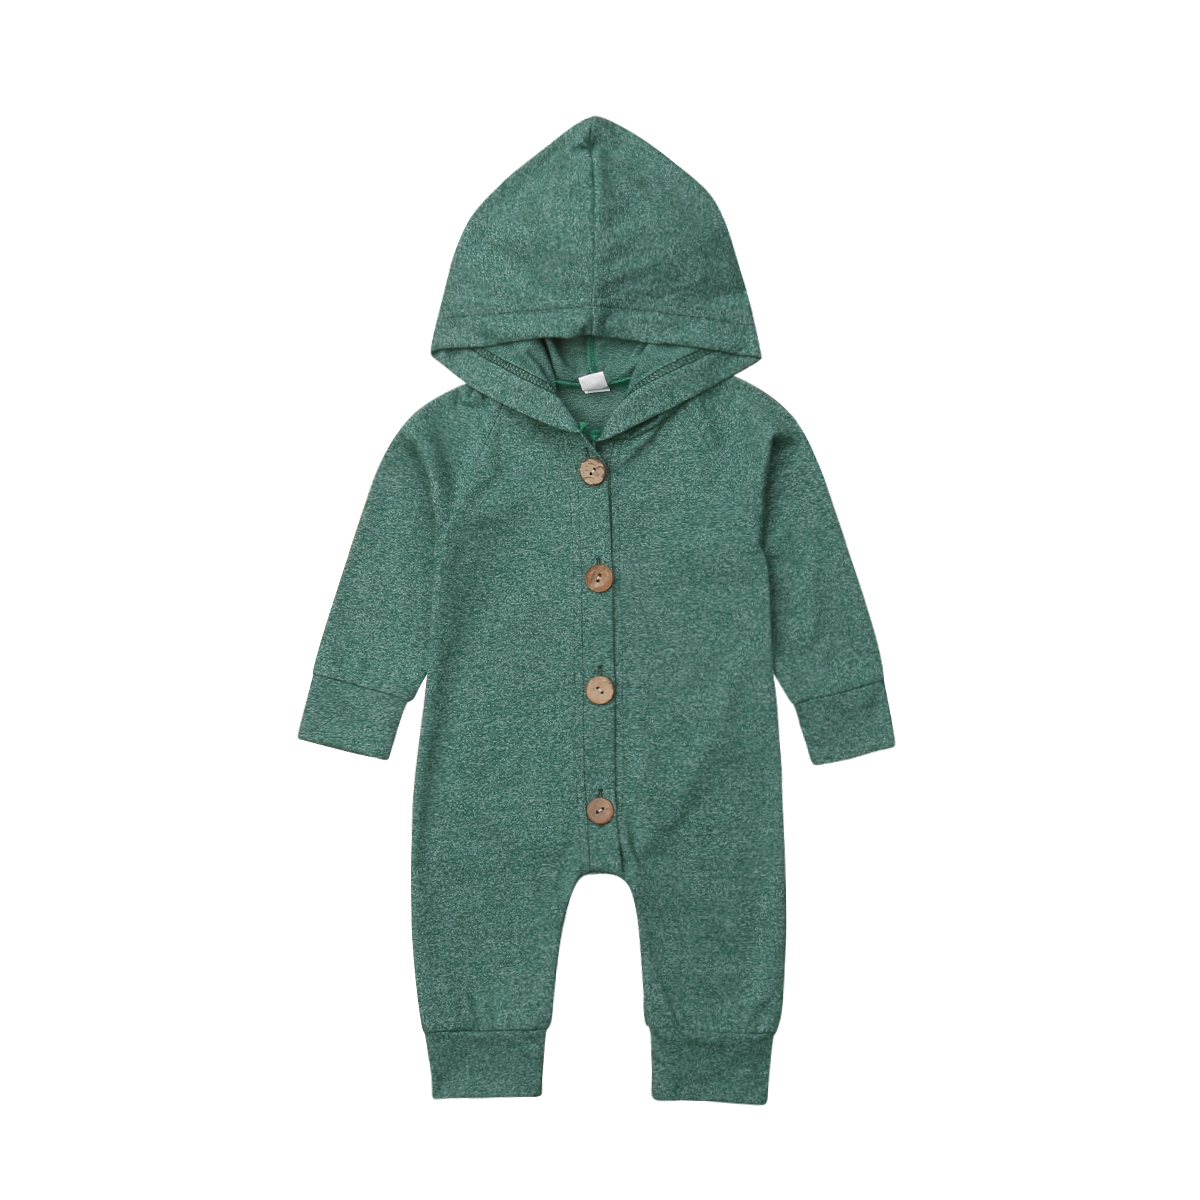 3cc41df1f 7 Color Baby Boy Girl Hooded Romper Kid Outerwear Outfit Jumpsuit for Newborn  Baby Girl Infant